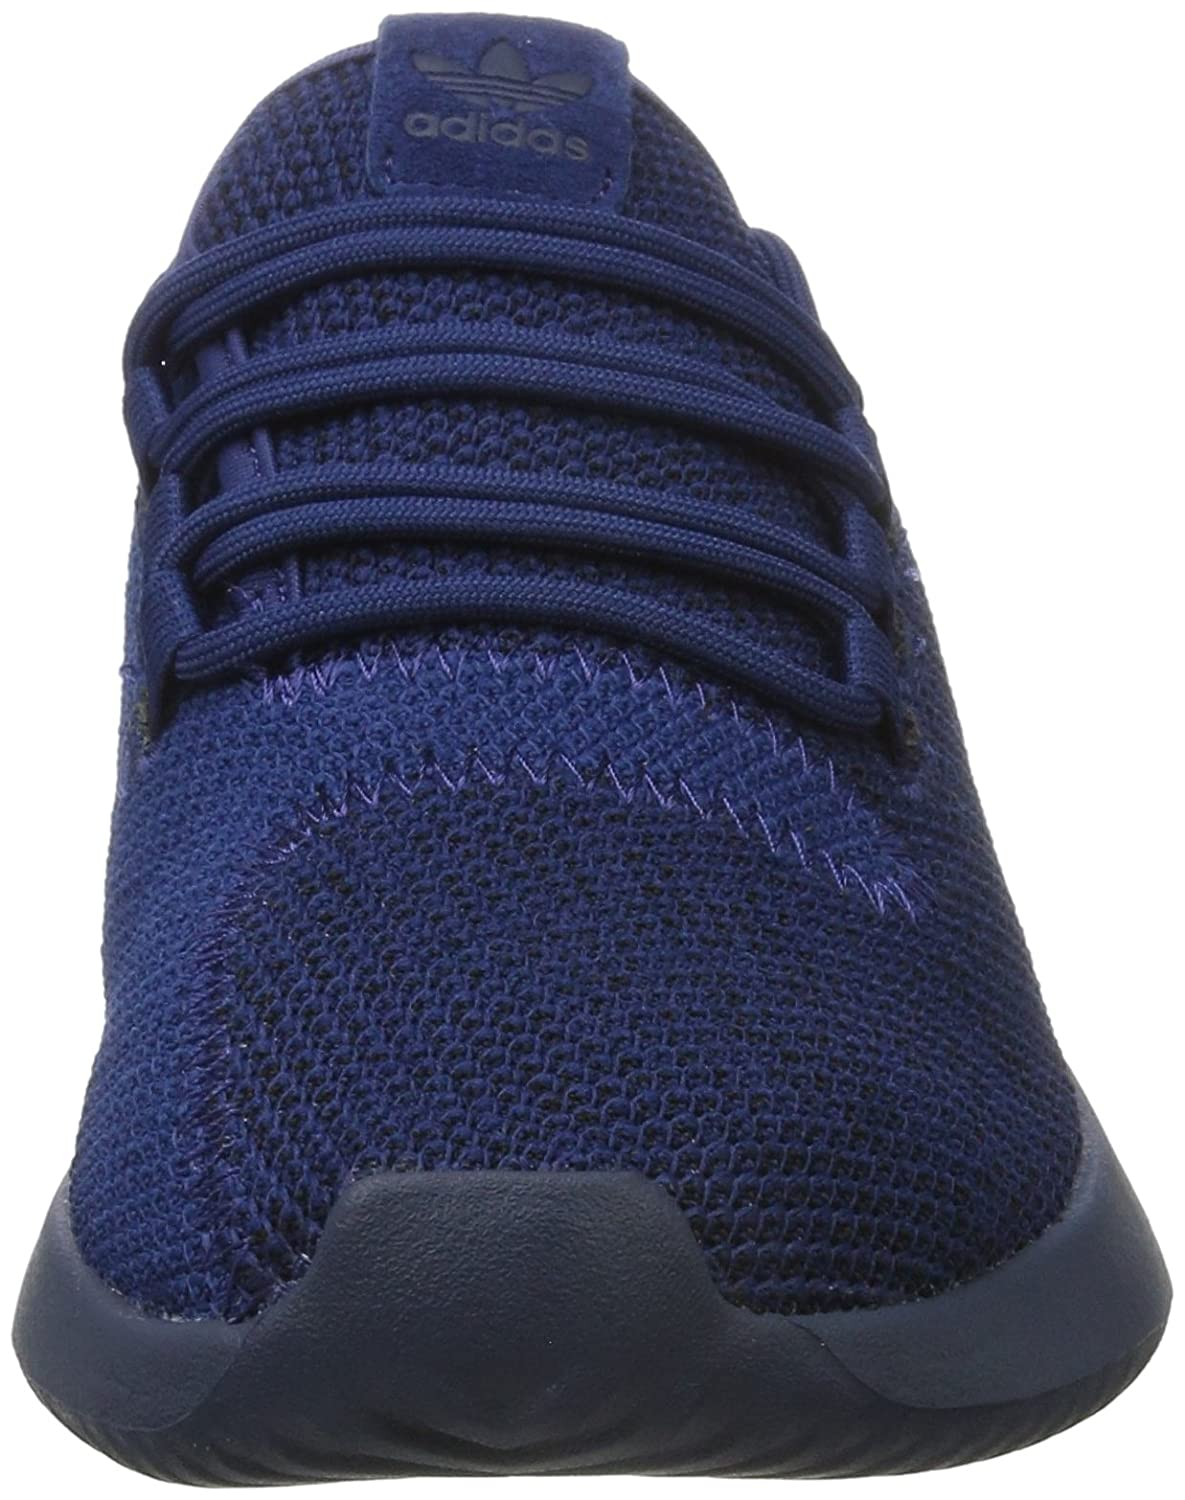 adidas Tubular Shadow, Sneakers Basses Mixte enfant, Bleu (Mystery Blue/FTWR White/Collegiate Navy), 38 2/3 EU